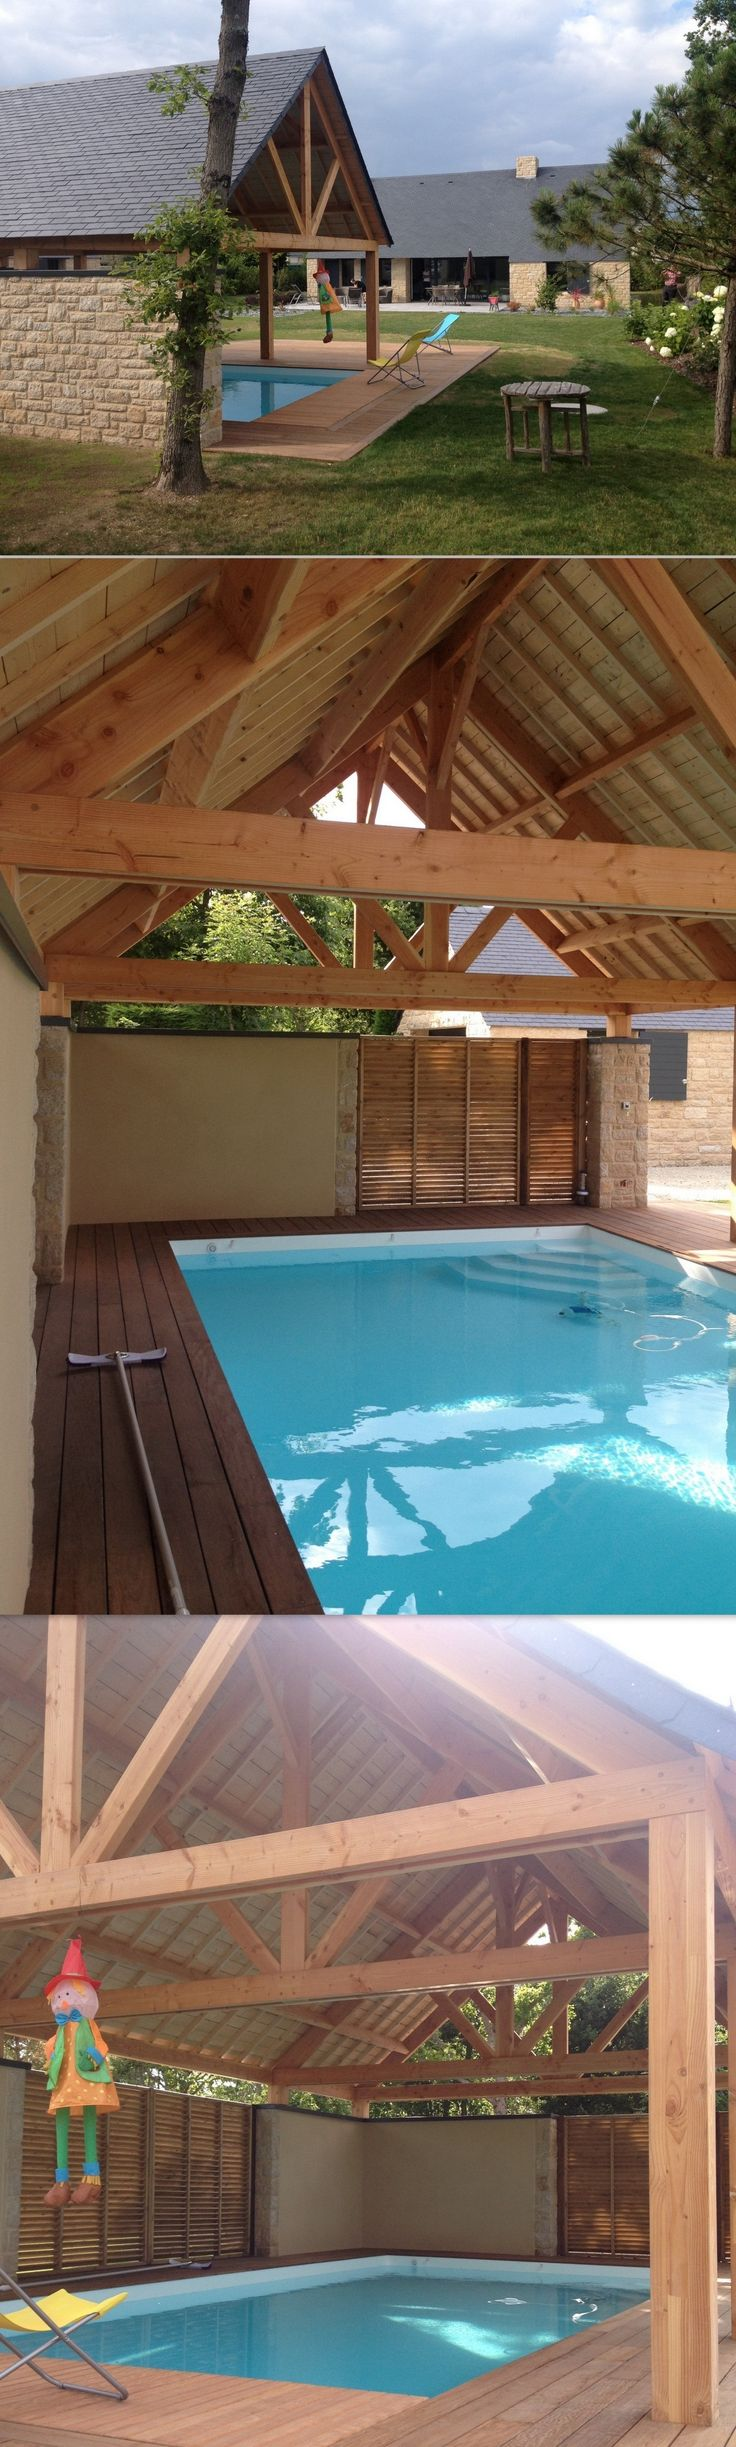 17 best ideas about abris de piscine on pinterest for Constructeur piscine 17